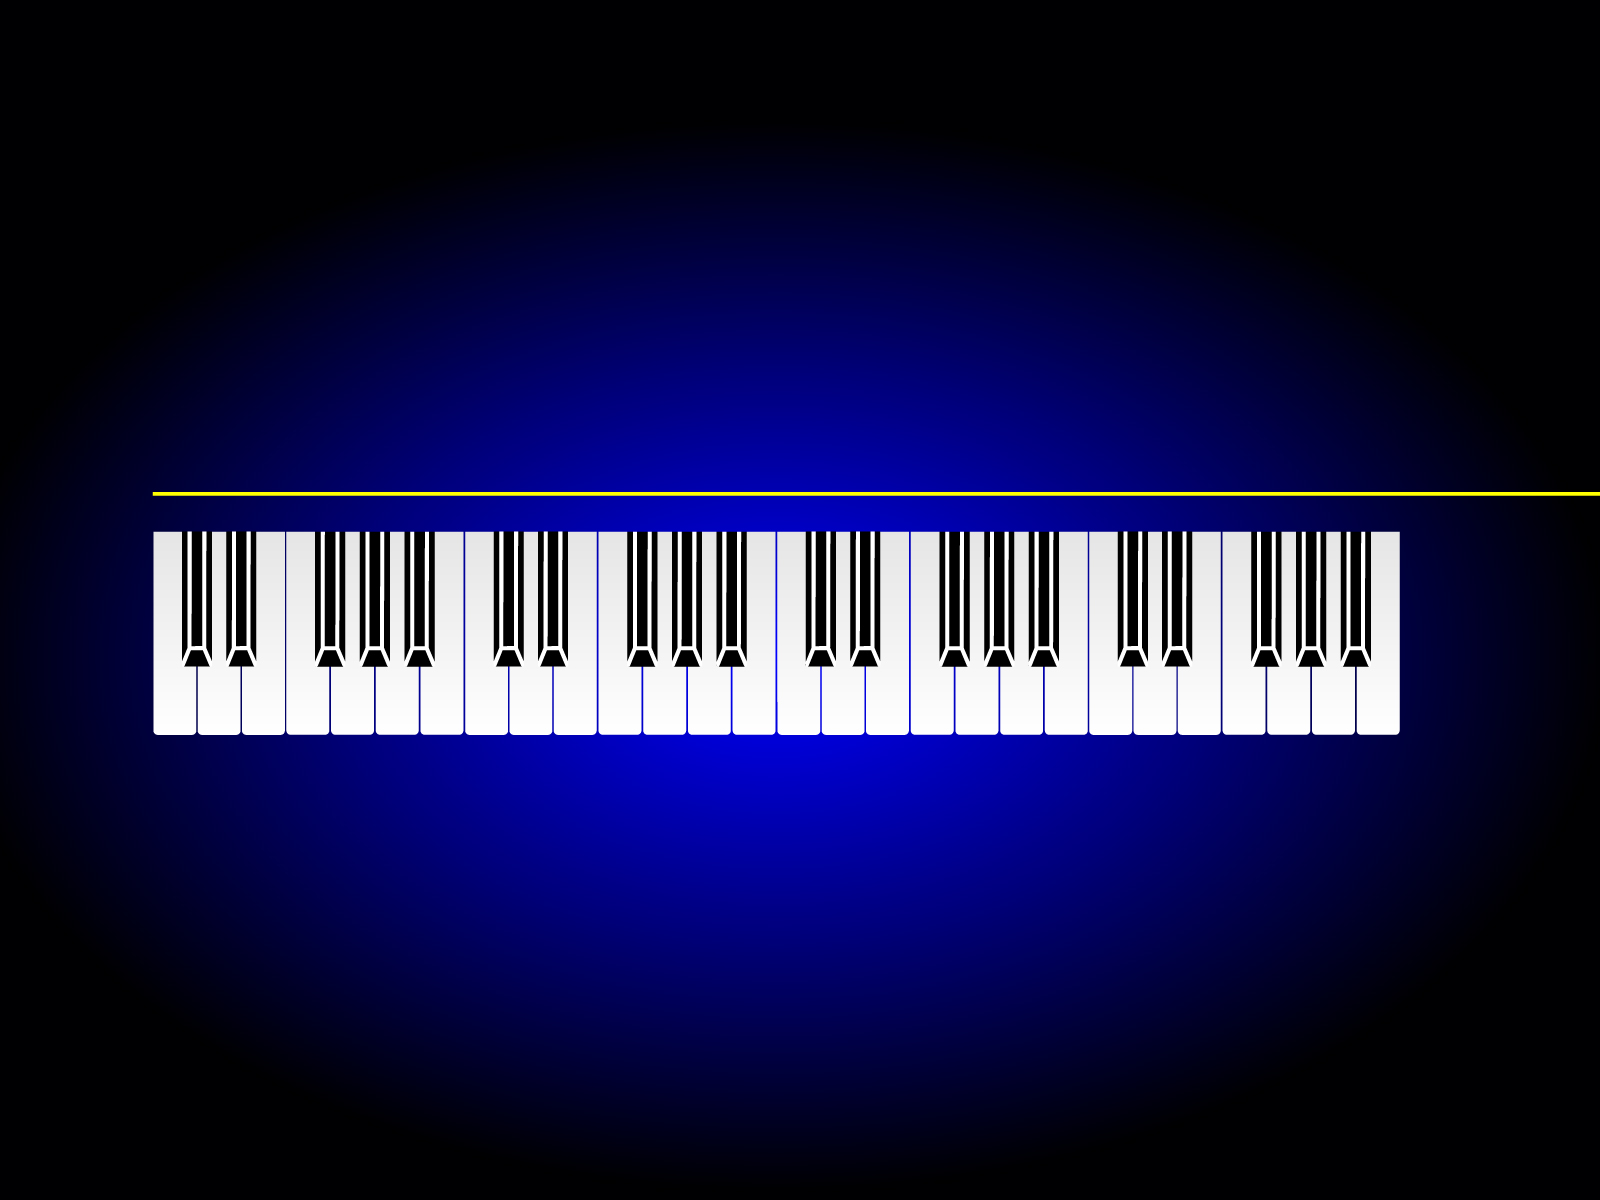 Music piano bar ppt backgrounds music templates ppt grounds music piano bar powerpoint backgrounds toneelgroepblik Image collections